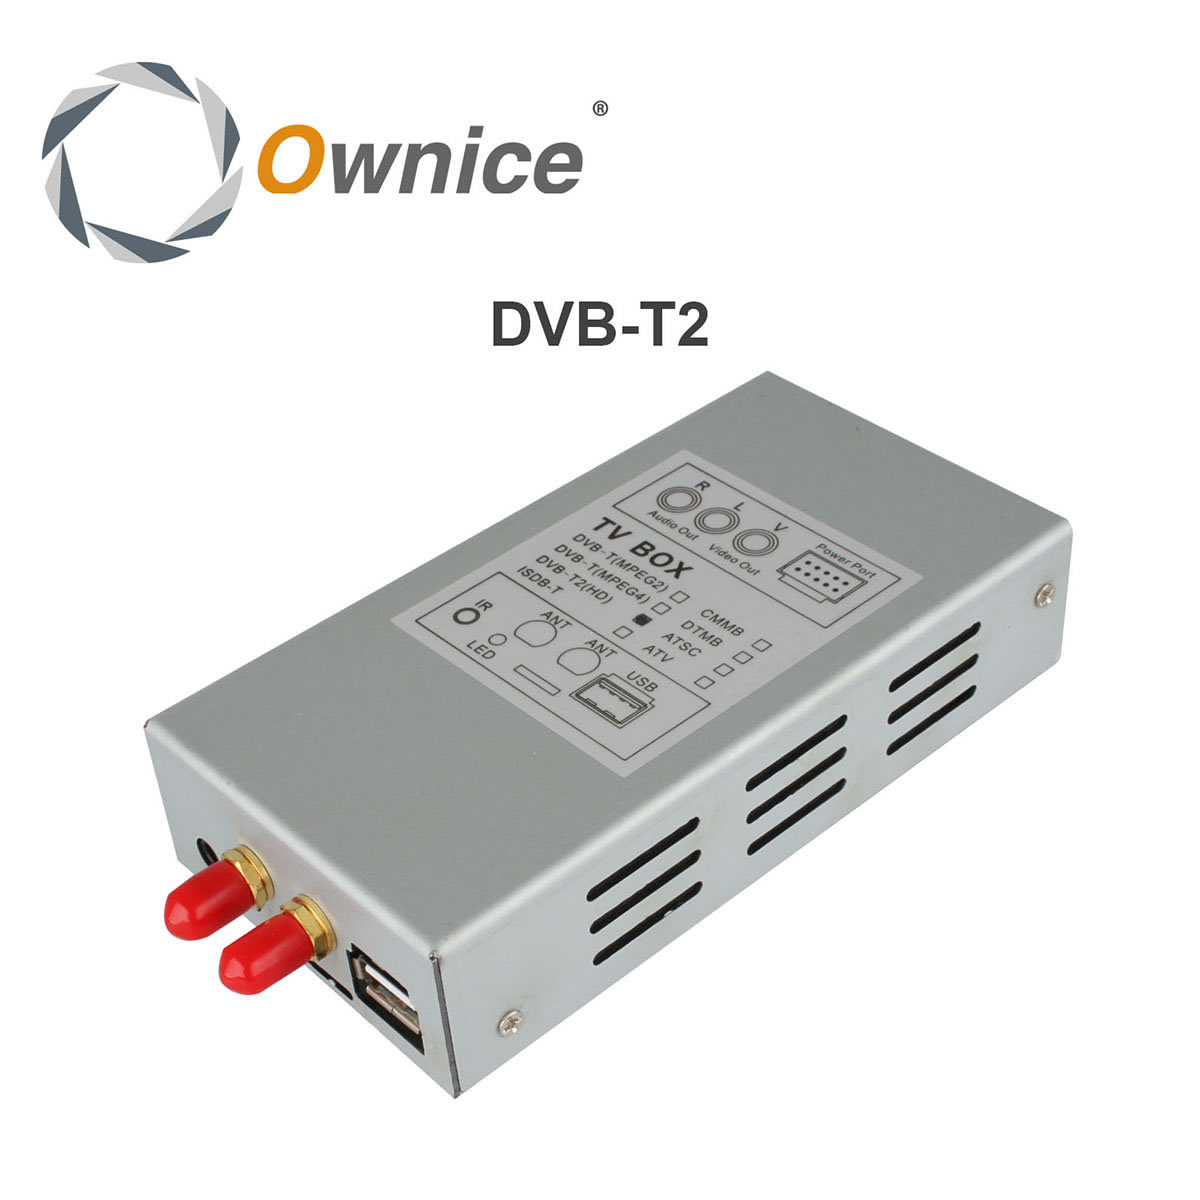 Special DVB-T2 Digital Box for Ownice Car DVD Player For Russia Thailand Malaysia area. The item just for our DVD натенный аксессуар northern thailand street f0038 2 f0038 2